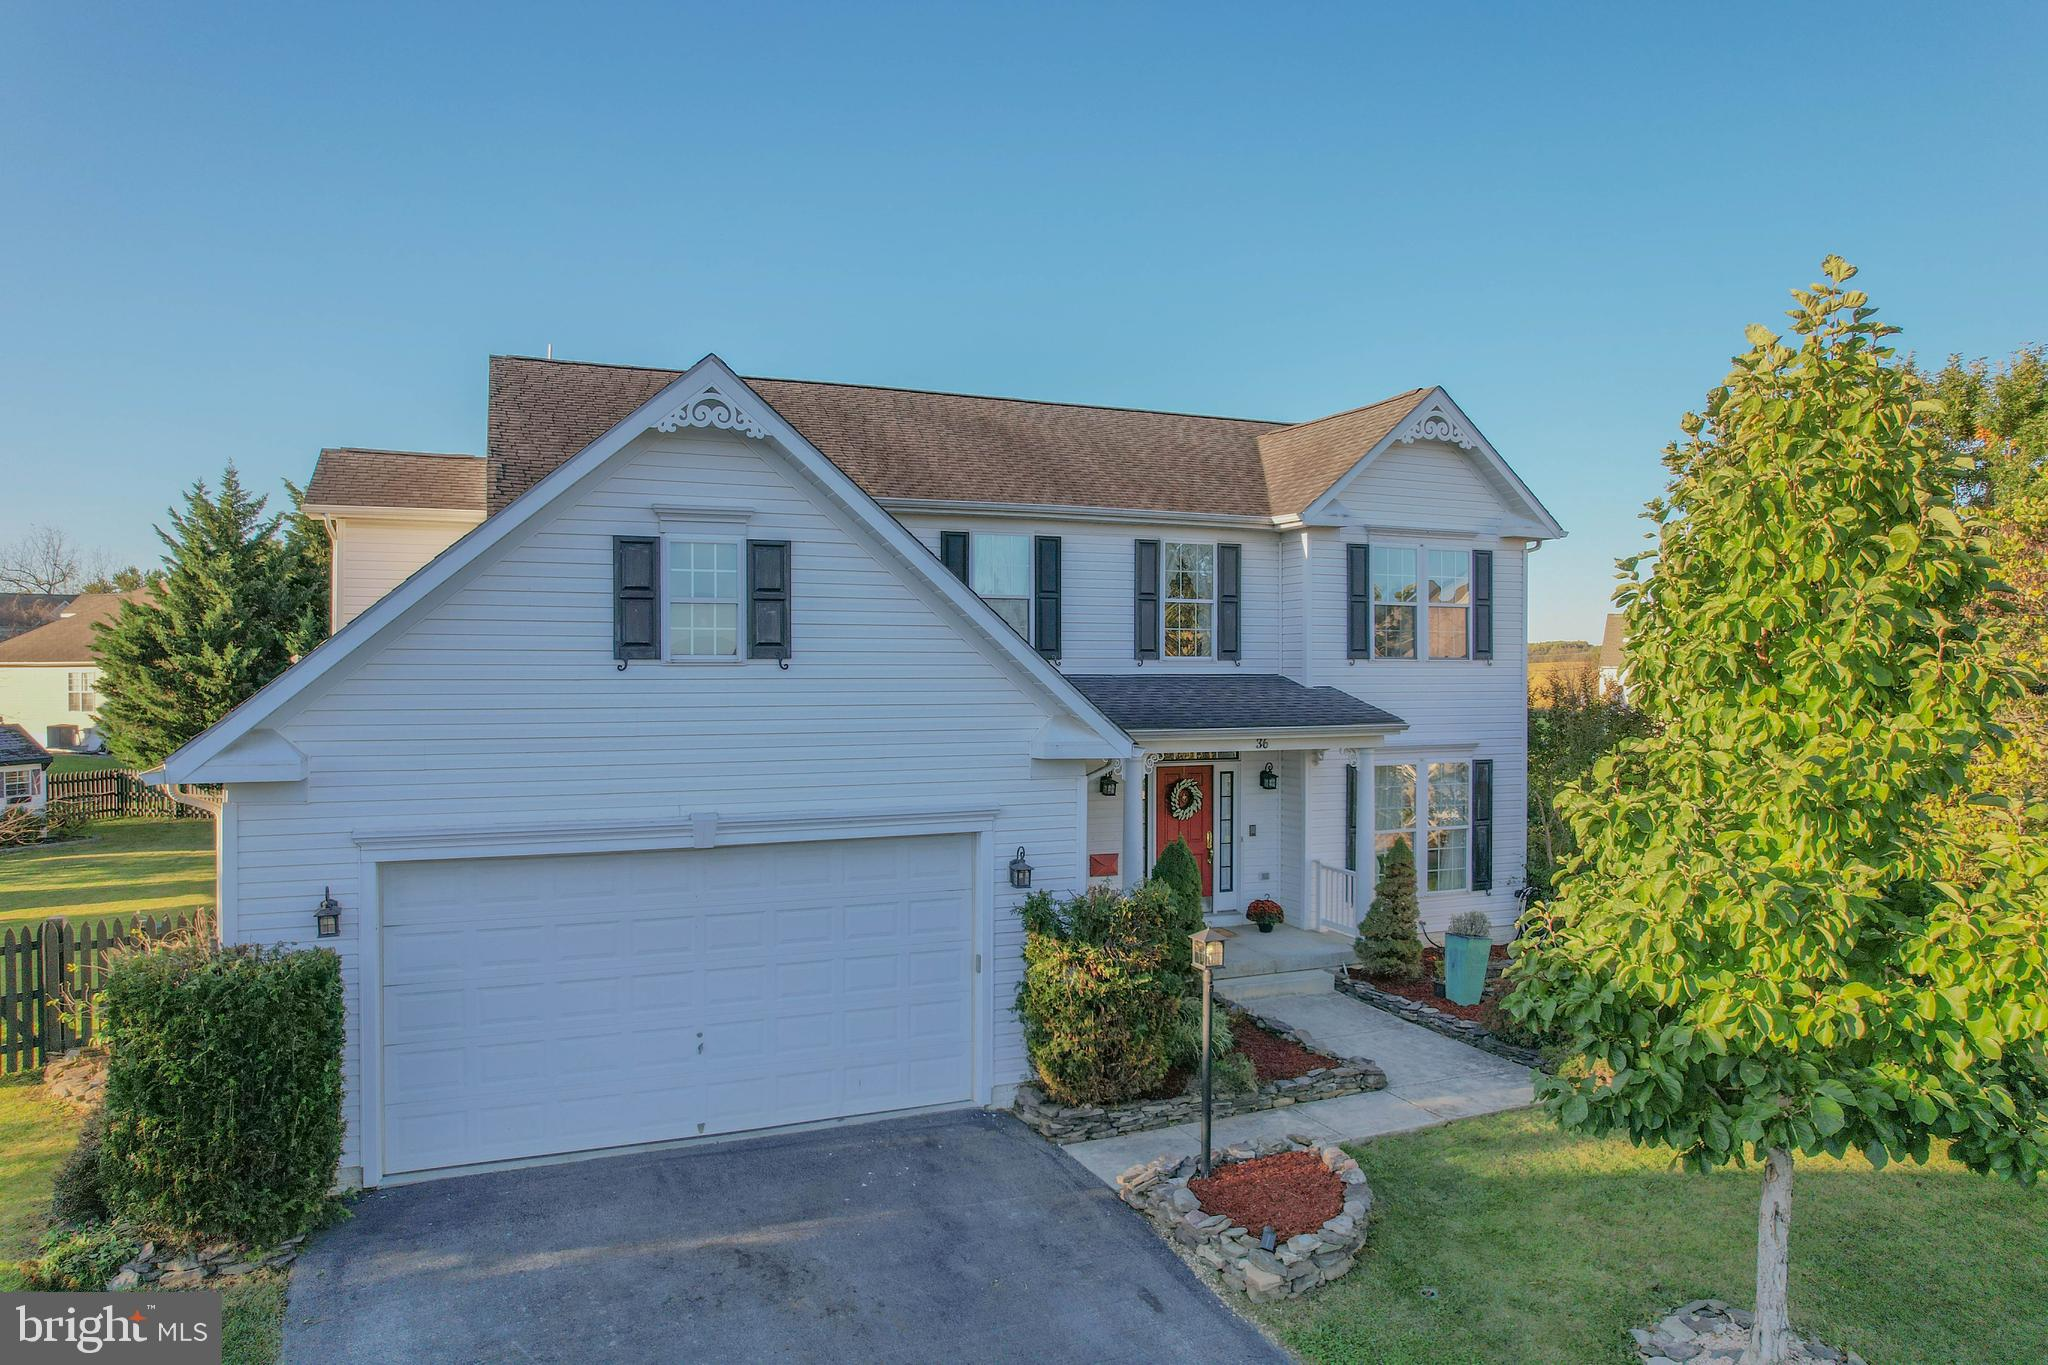 OH WOW!  This beautiful nearly 5,000 sq feet 5BR/ 4BA home is situated on a quiet cul-de-sac in the